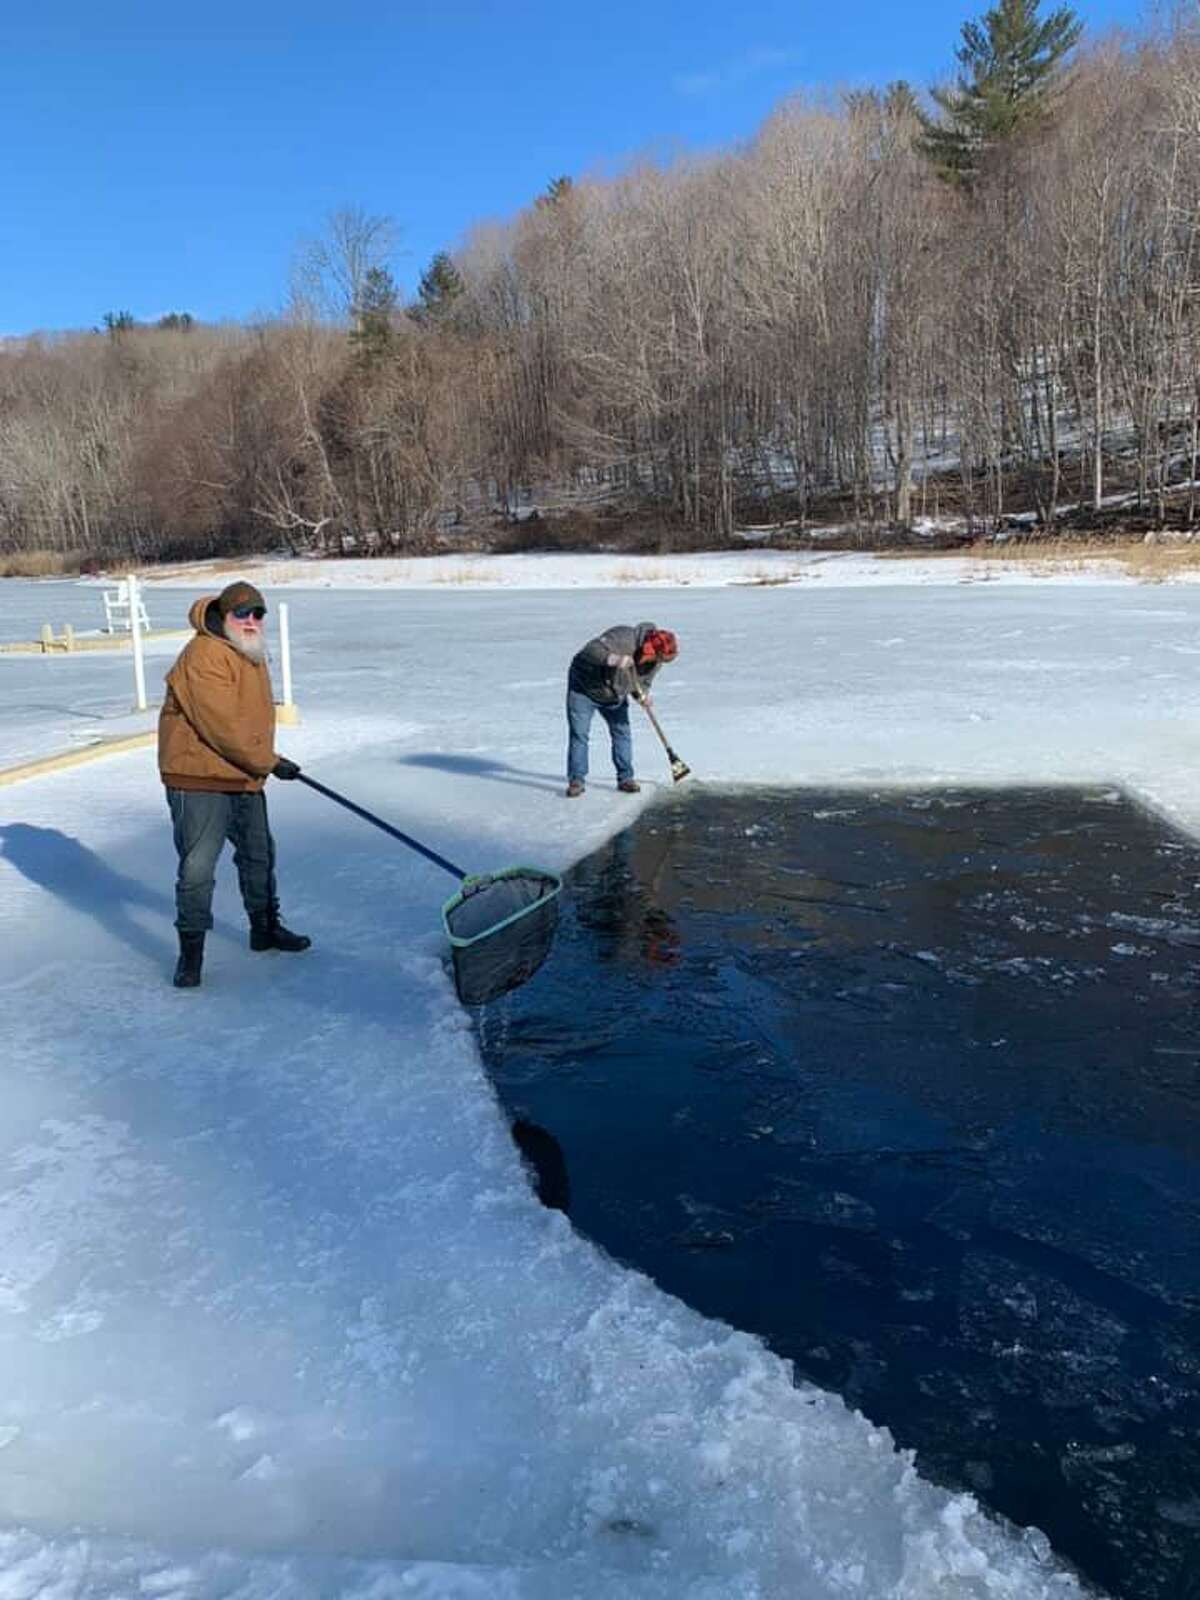 """Teams of employees from agencies and companies around Torrington participated in a """"penguin plunge"""" March 6 to raise money for Kids of Summer, a not-for-profit that provides money for camp scholarships and activities. Above, members of Hillview Property Maintenance cut and clear the ice for the plunge."""